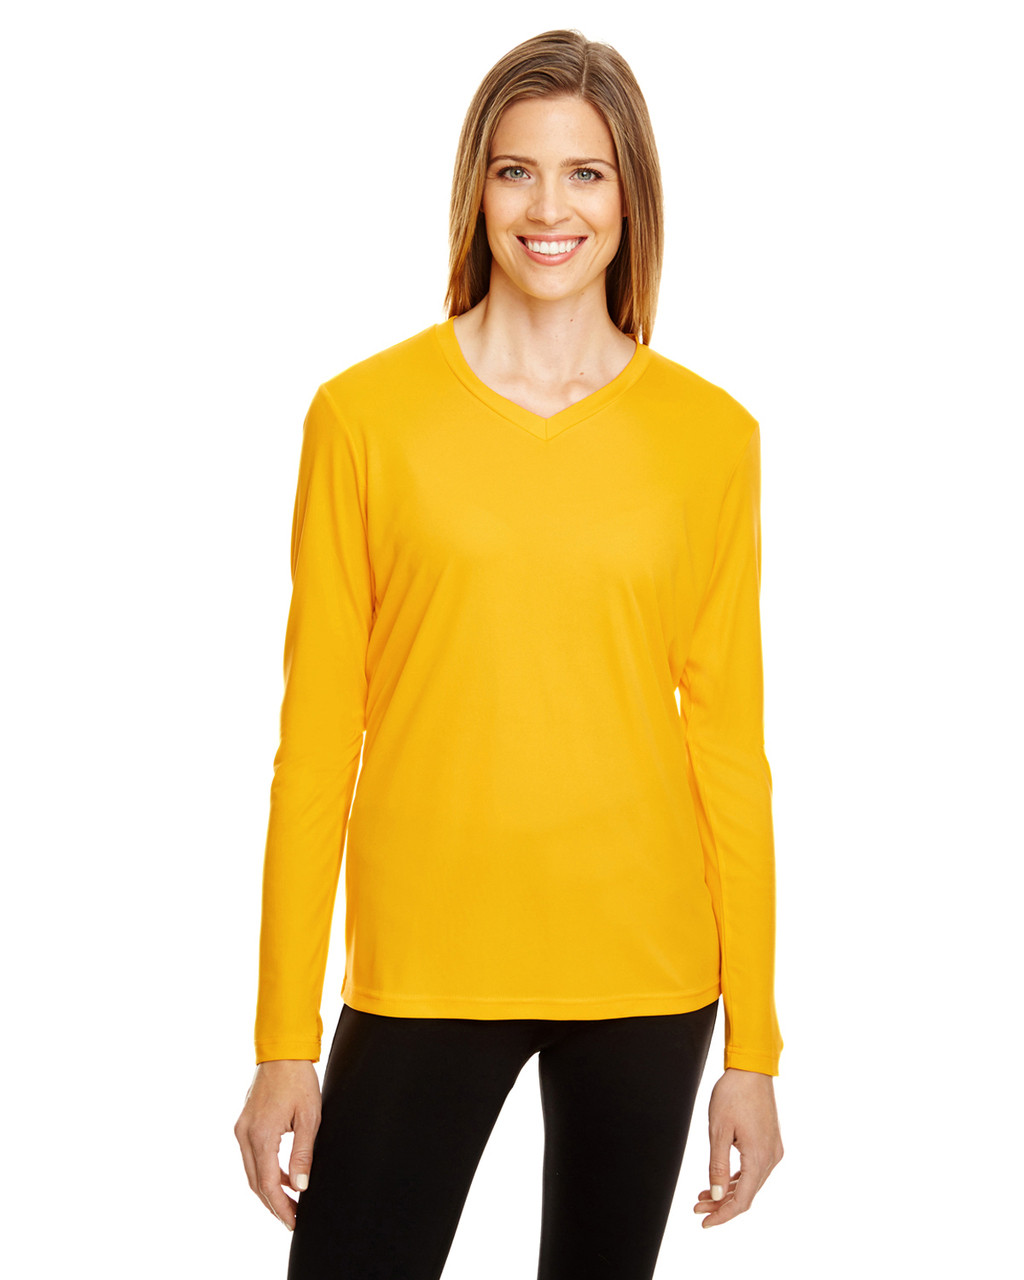 Sport Athletic Gold - TT11WL Team 365 Ladies' Zone Performance Long-Sleeve T-Shirt